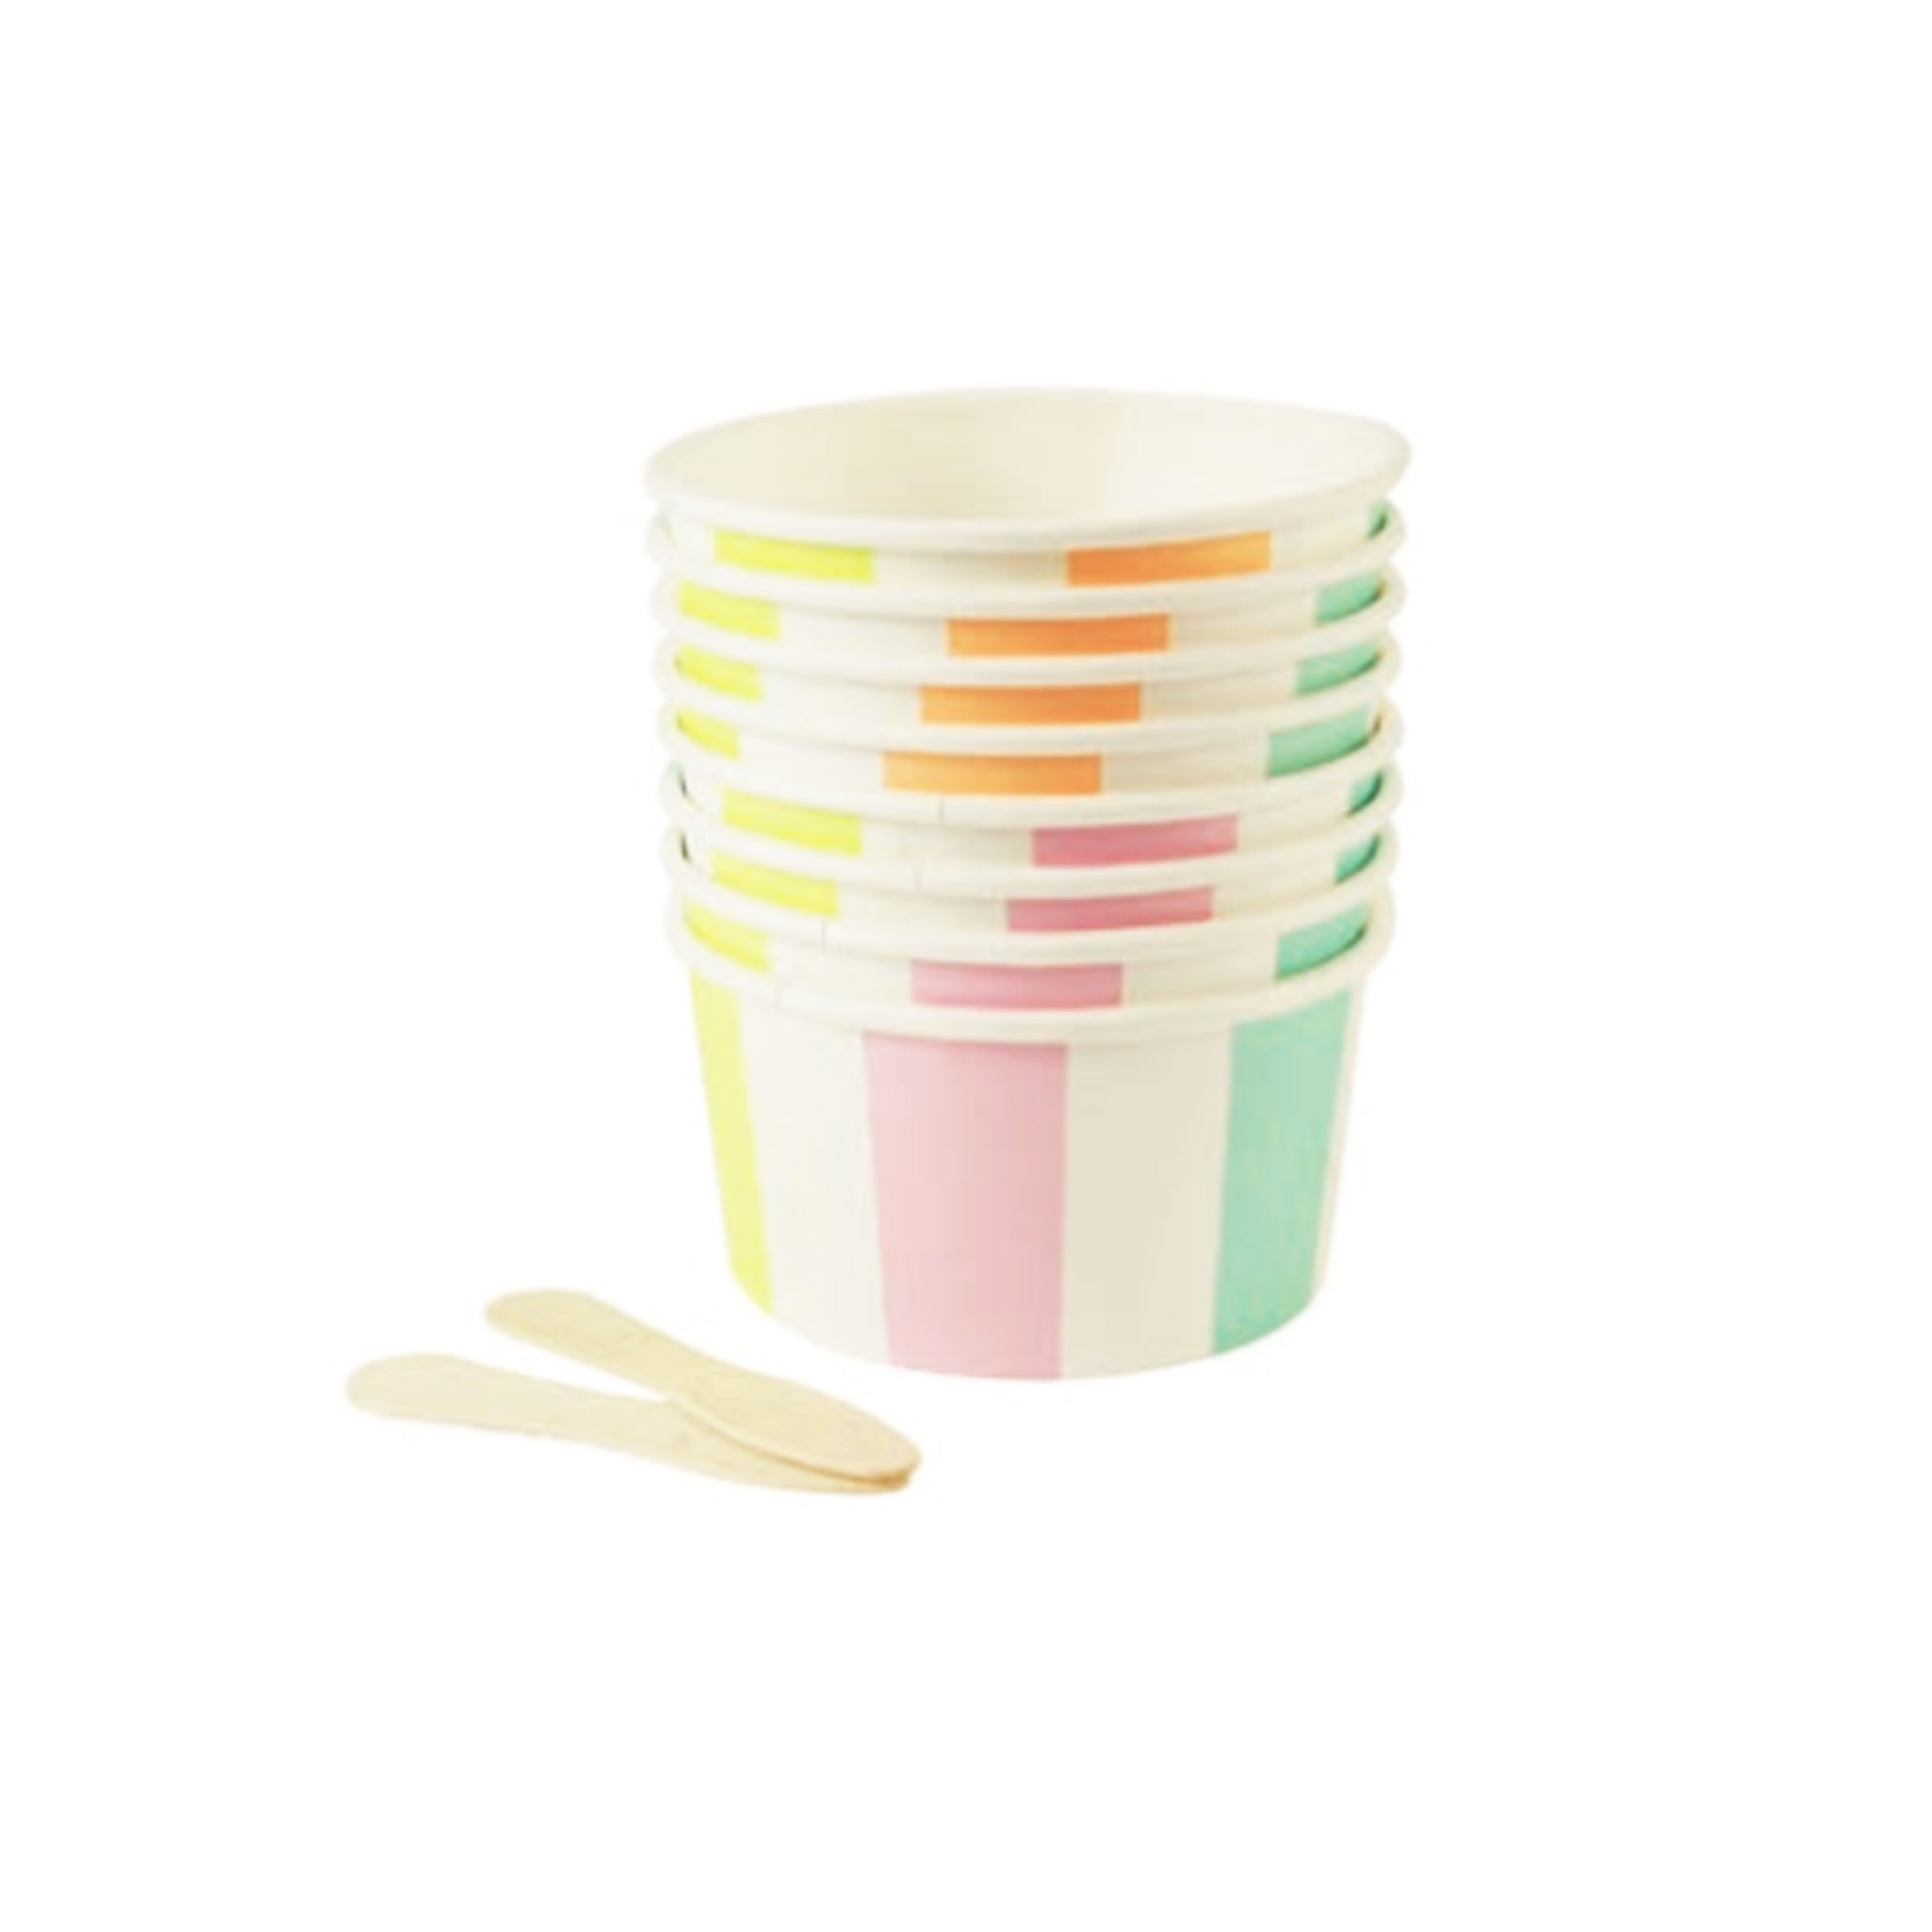 Pastel Stripe Ice Cream Cups Wooden Spoons 8 Pack